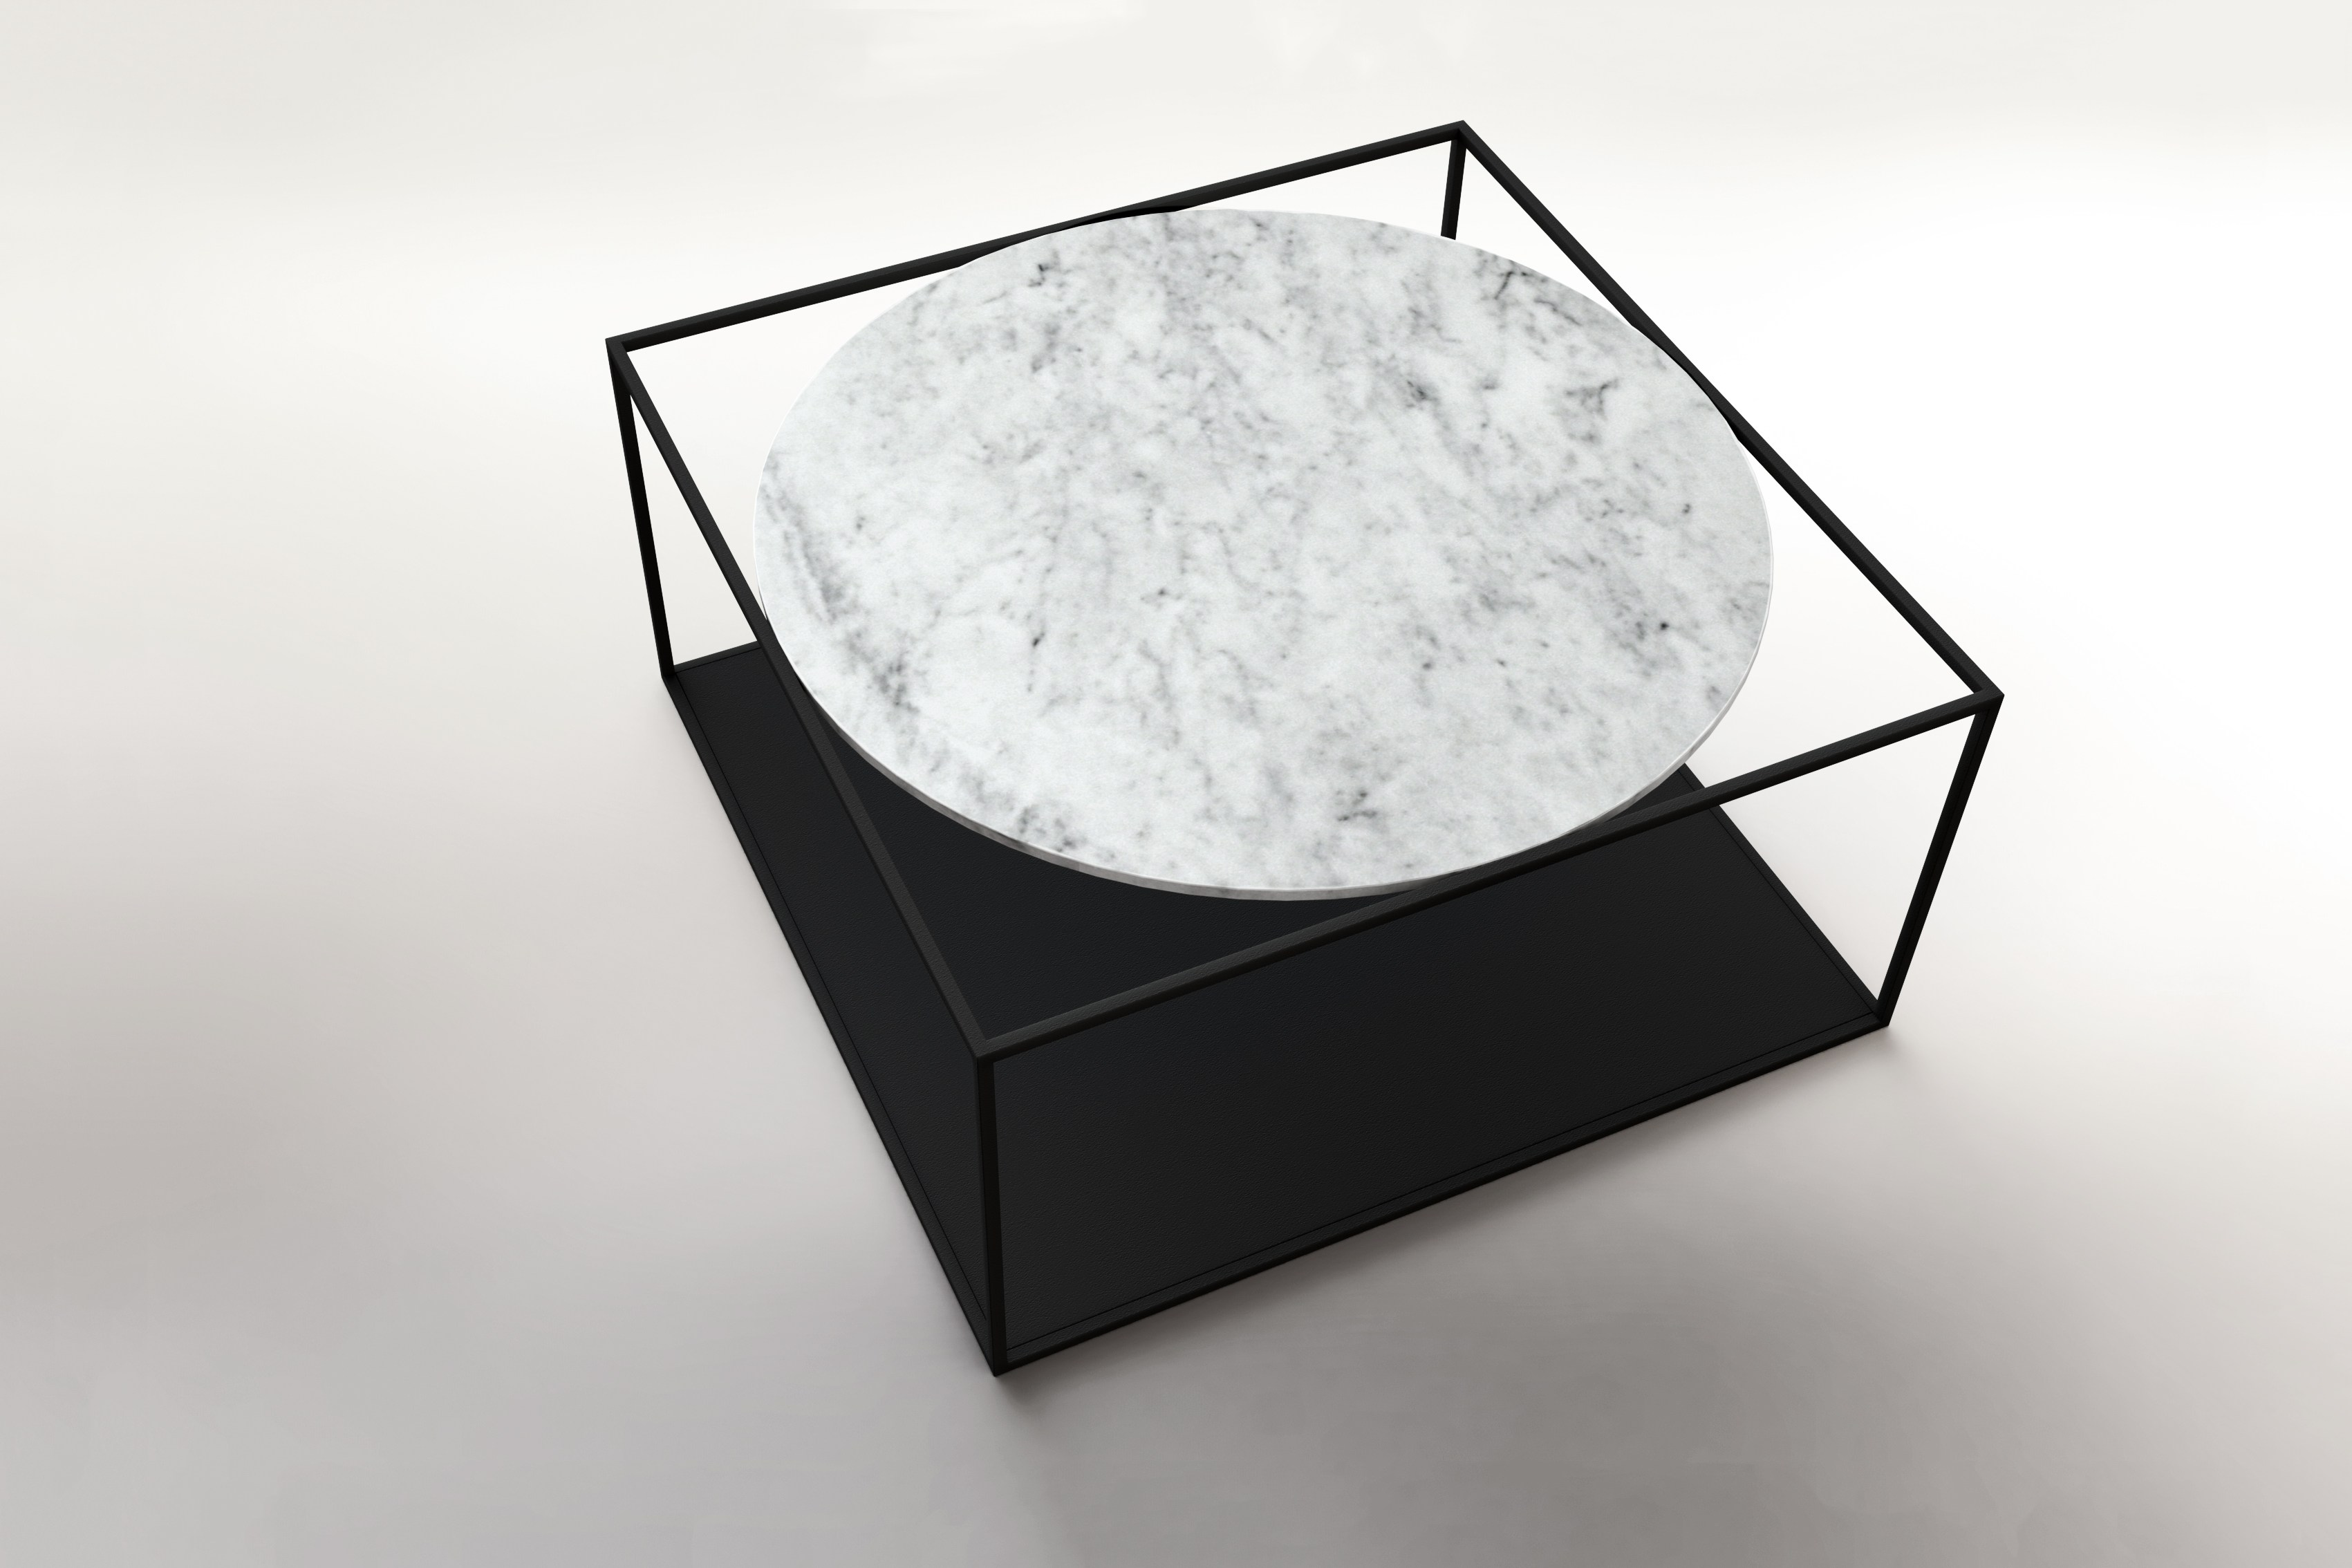 G3 marble coffee table by roche bobois design johan lindst n for Table basse design